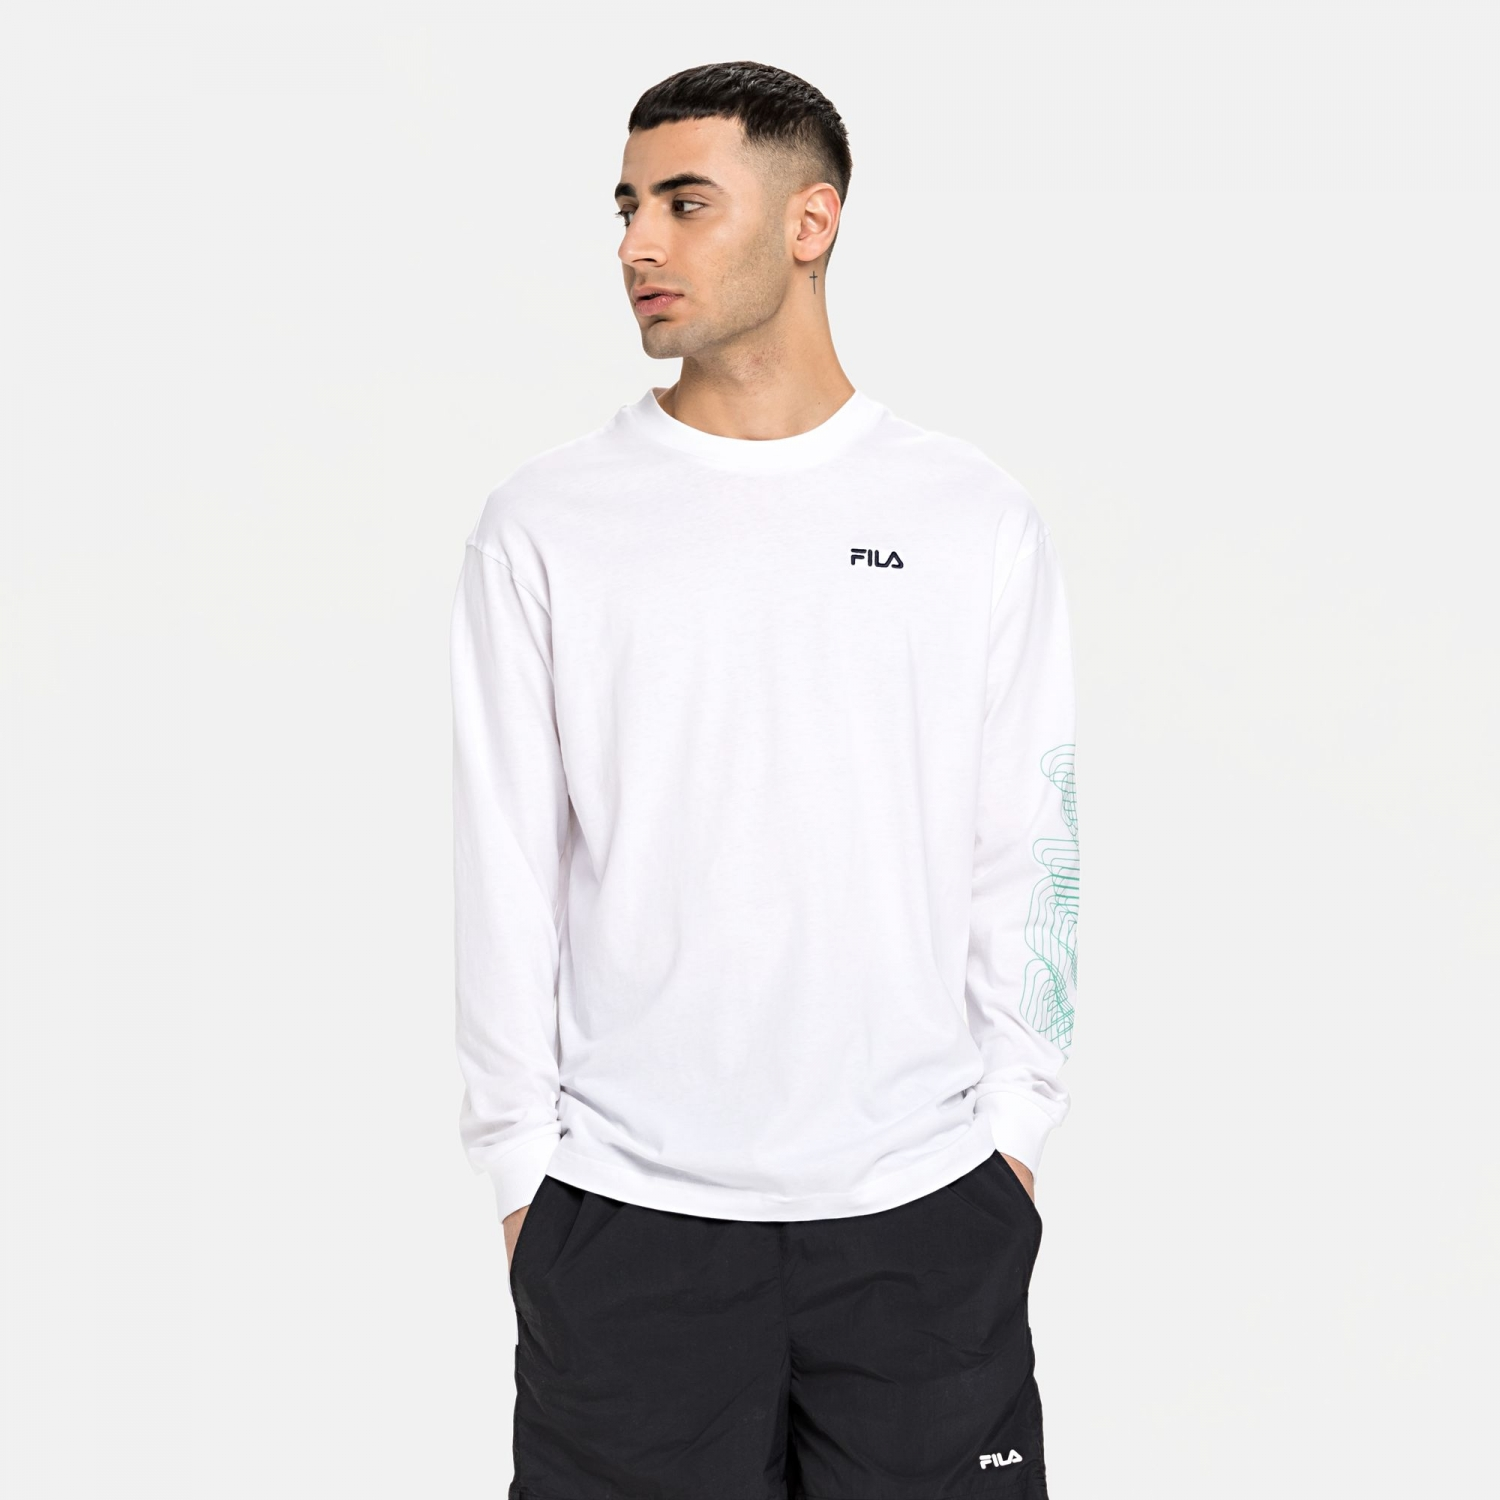 Fila Alvaro Long Sleeve Shirt Bild 1